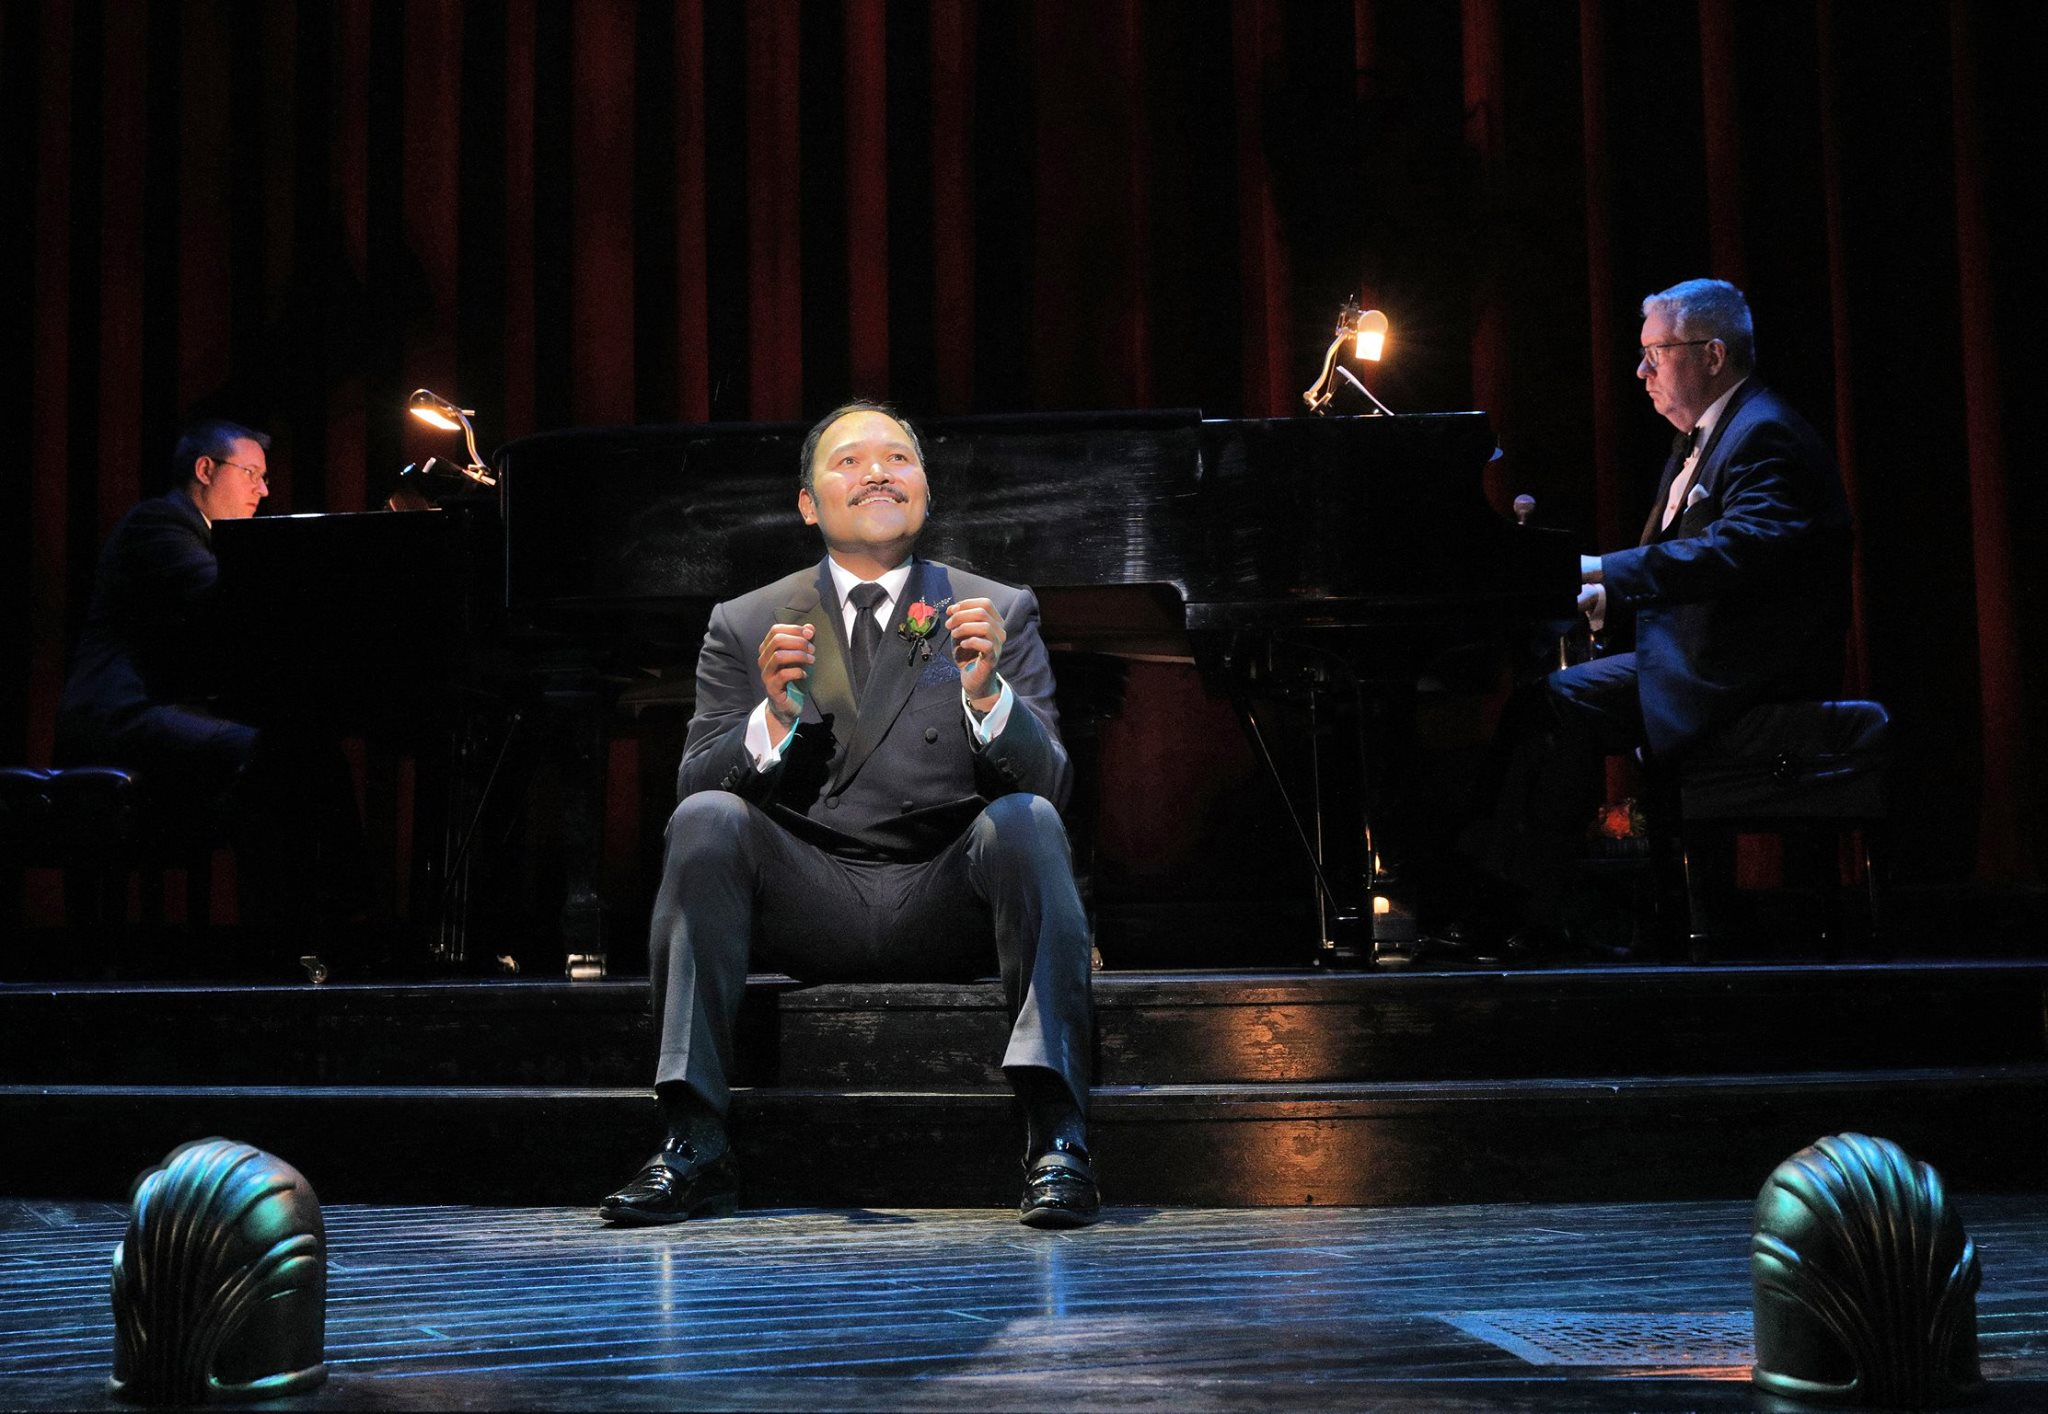 Orville Mendoza playing the 'hero' in Side by Side by Sondheim at Kansas City Repertory Theatre. Photo by Cory Weaver